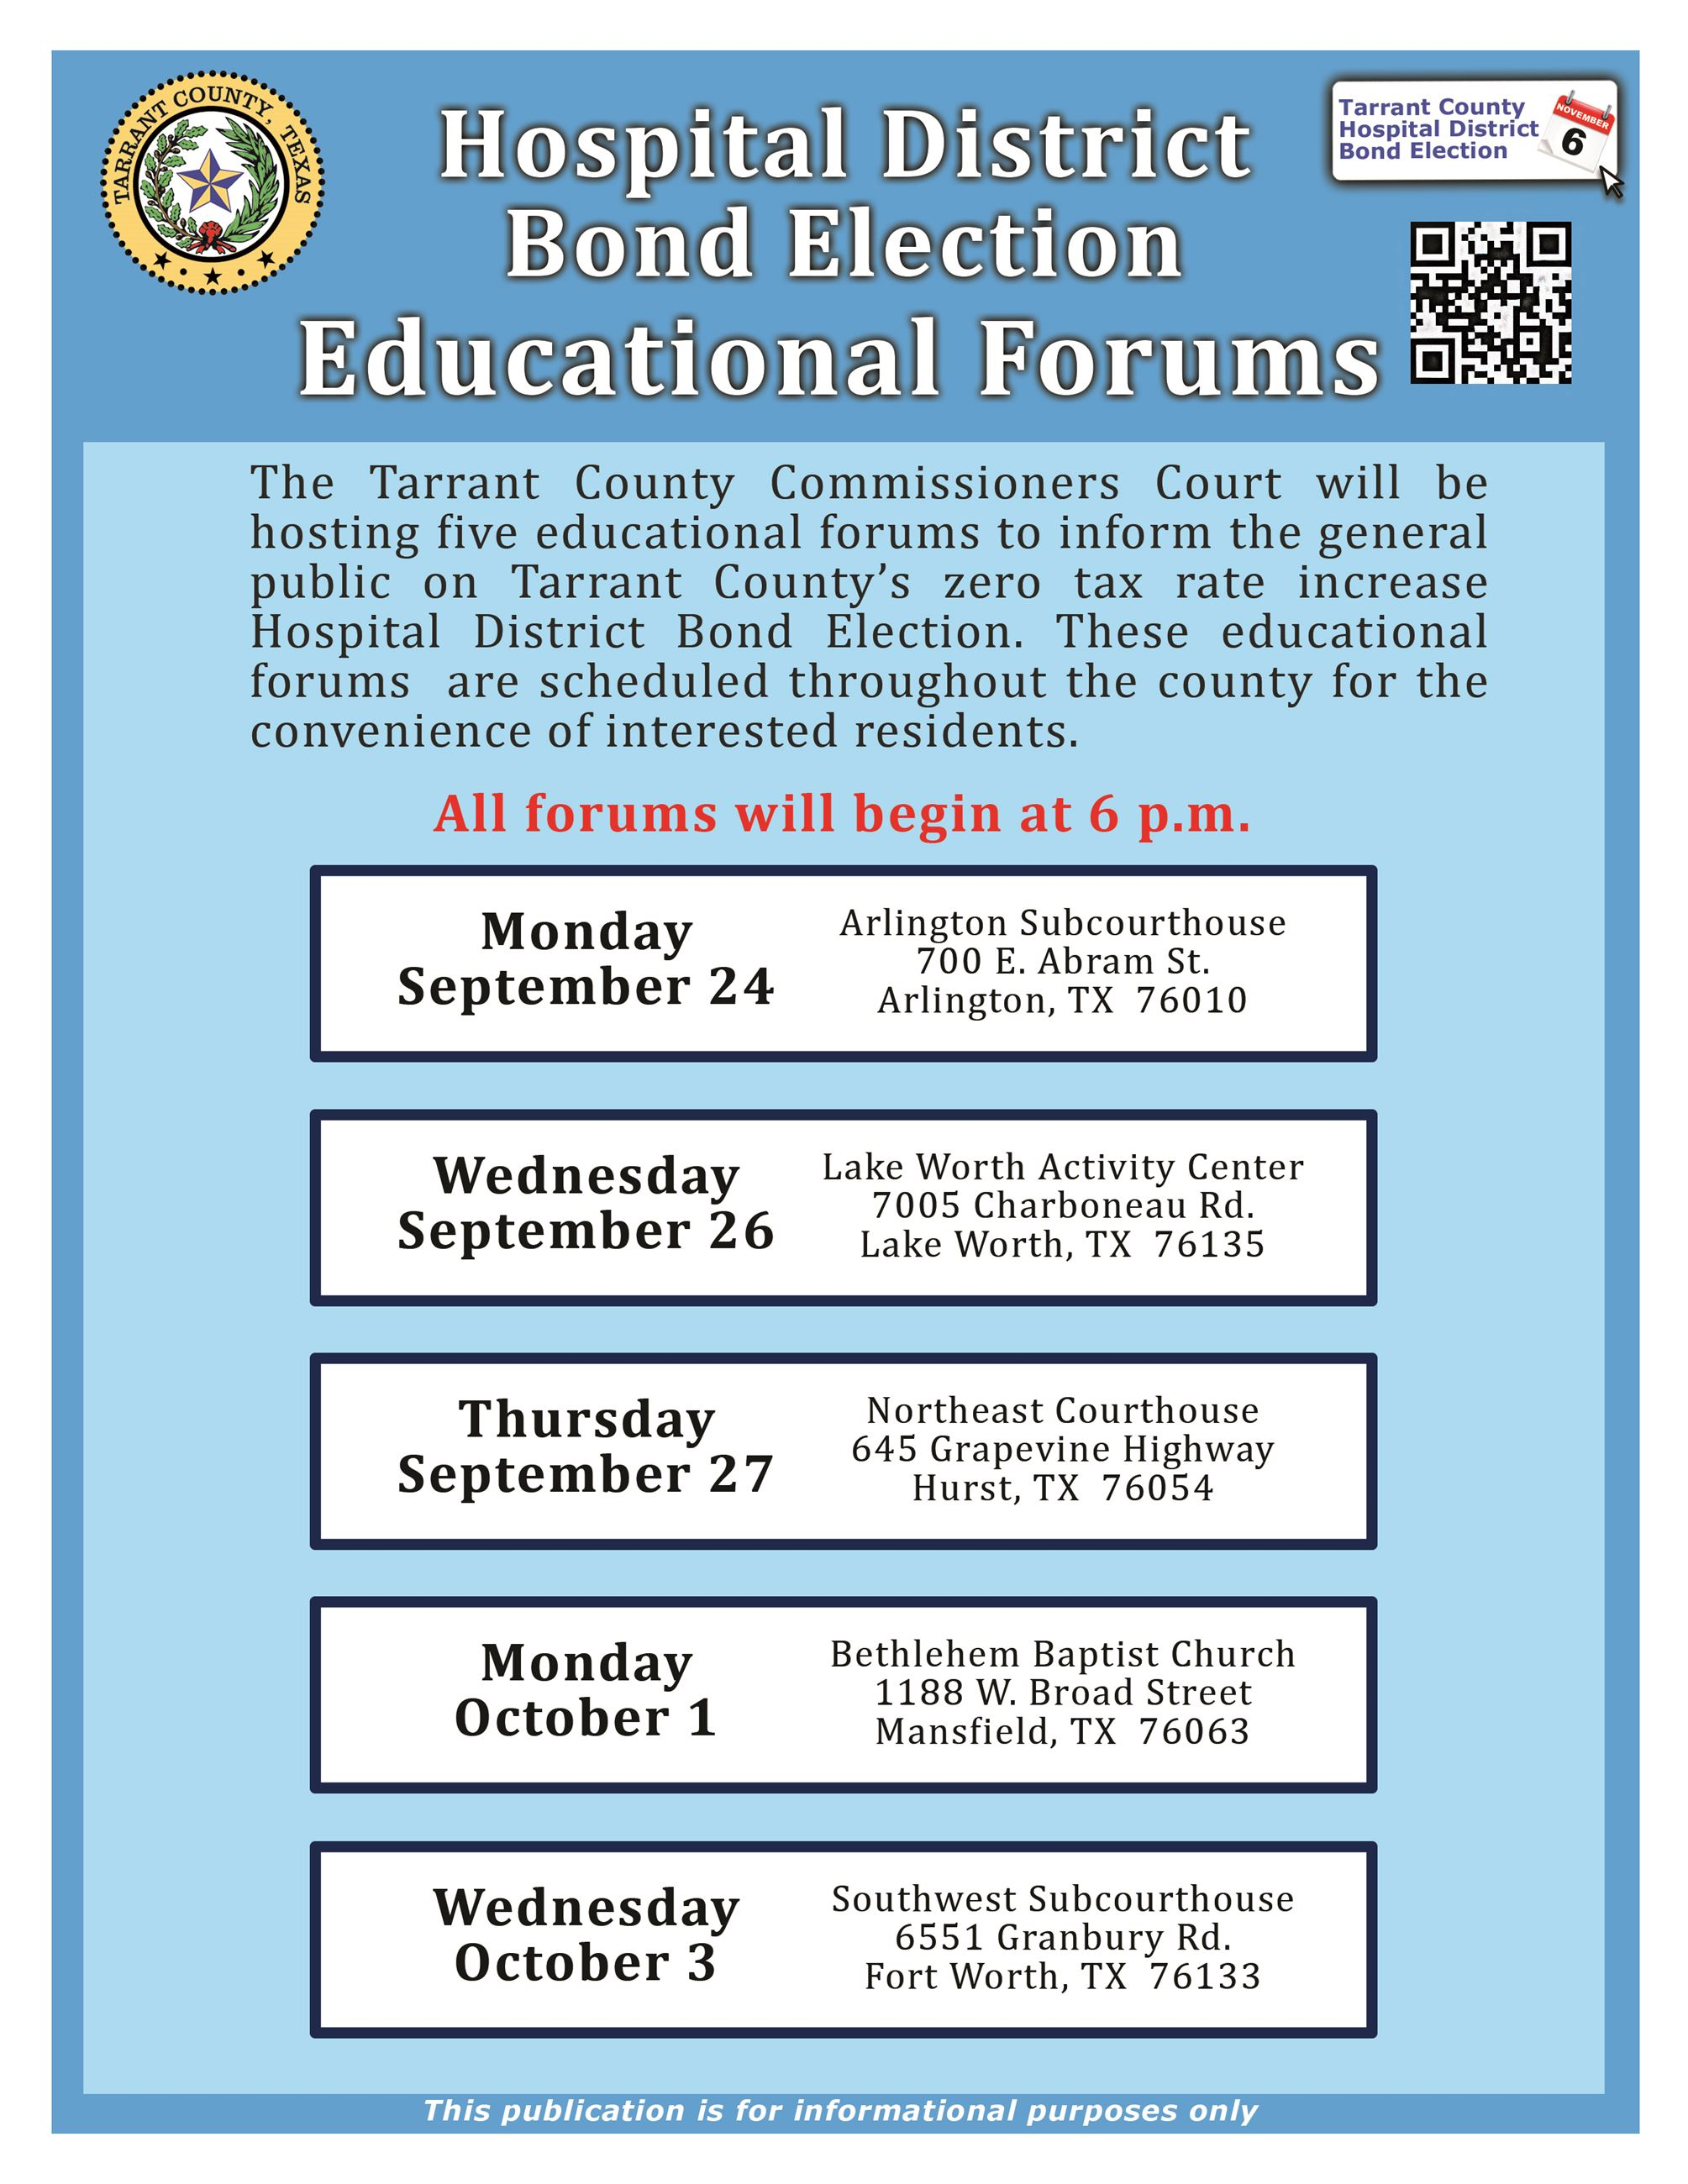 Hospital District Bond Election - Educational Forums Dates